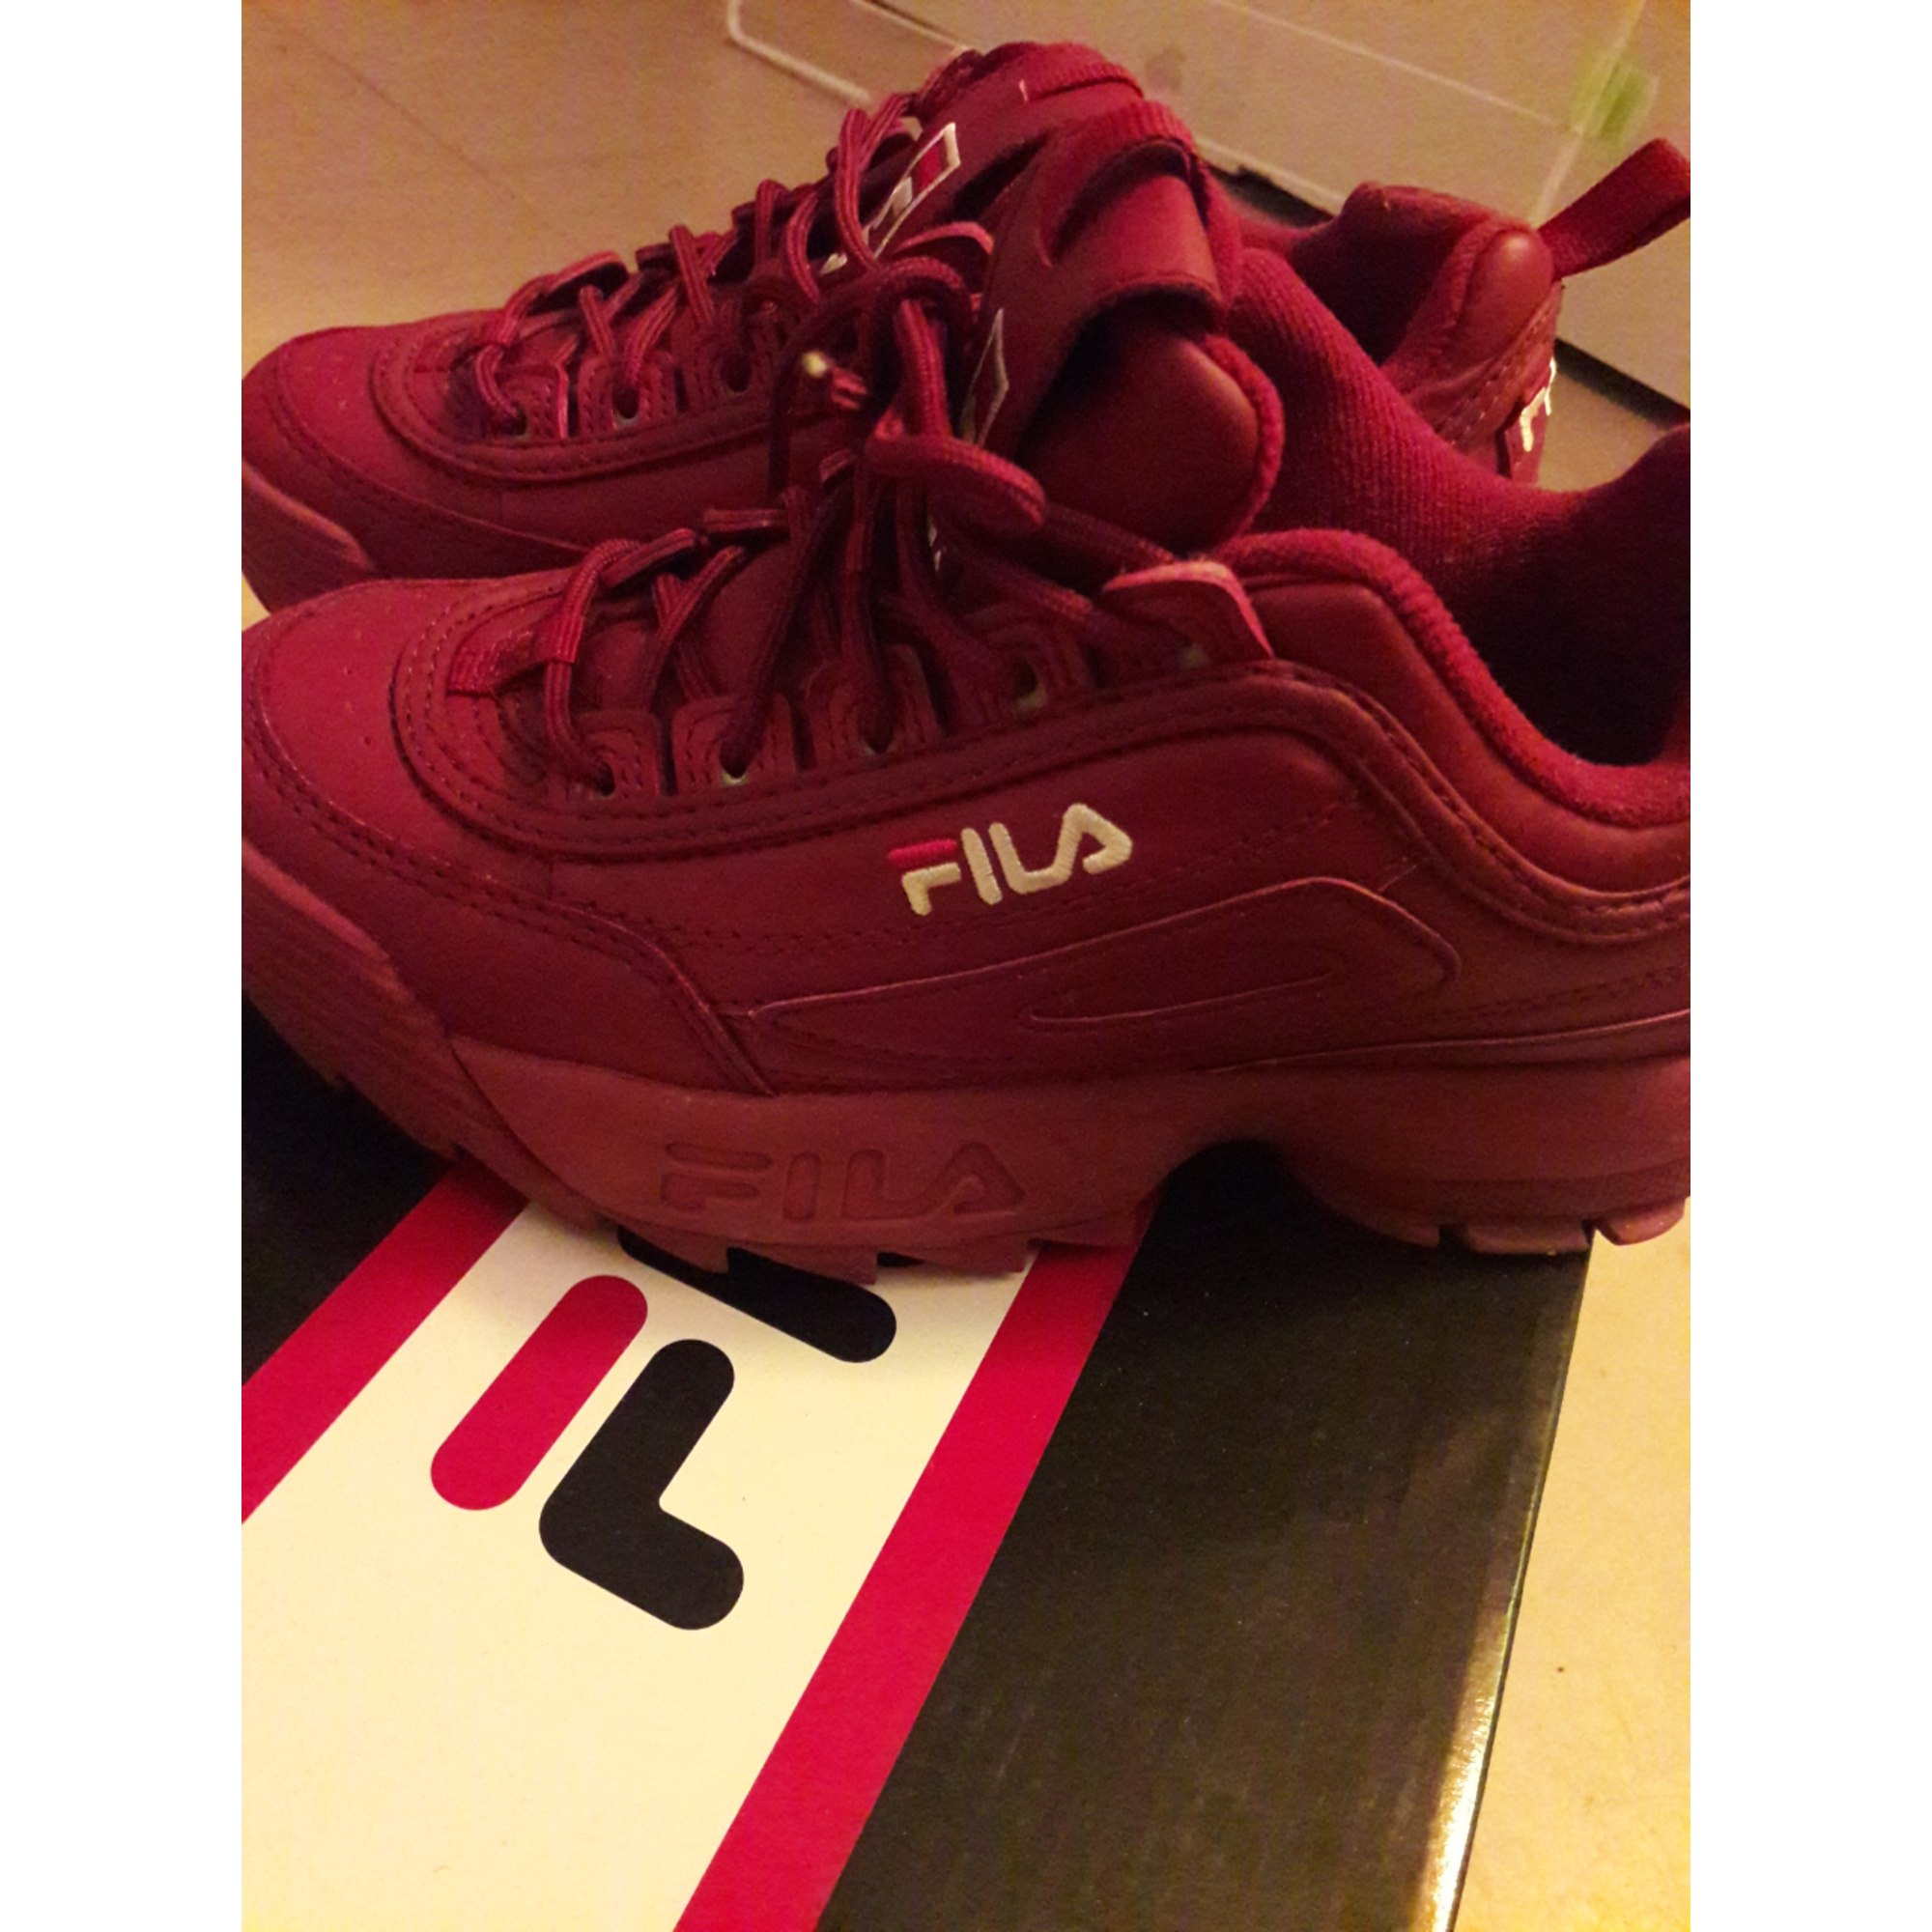 vrai fila chaussure fille taille 37